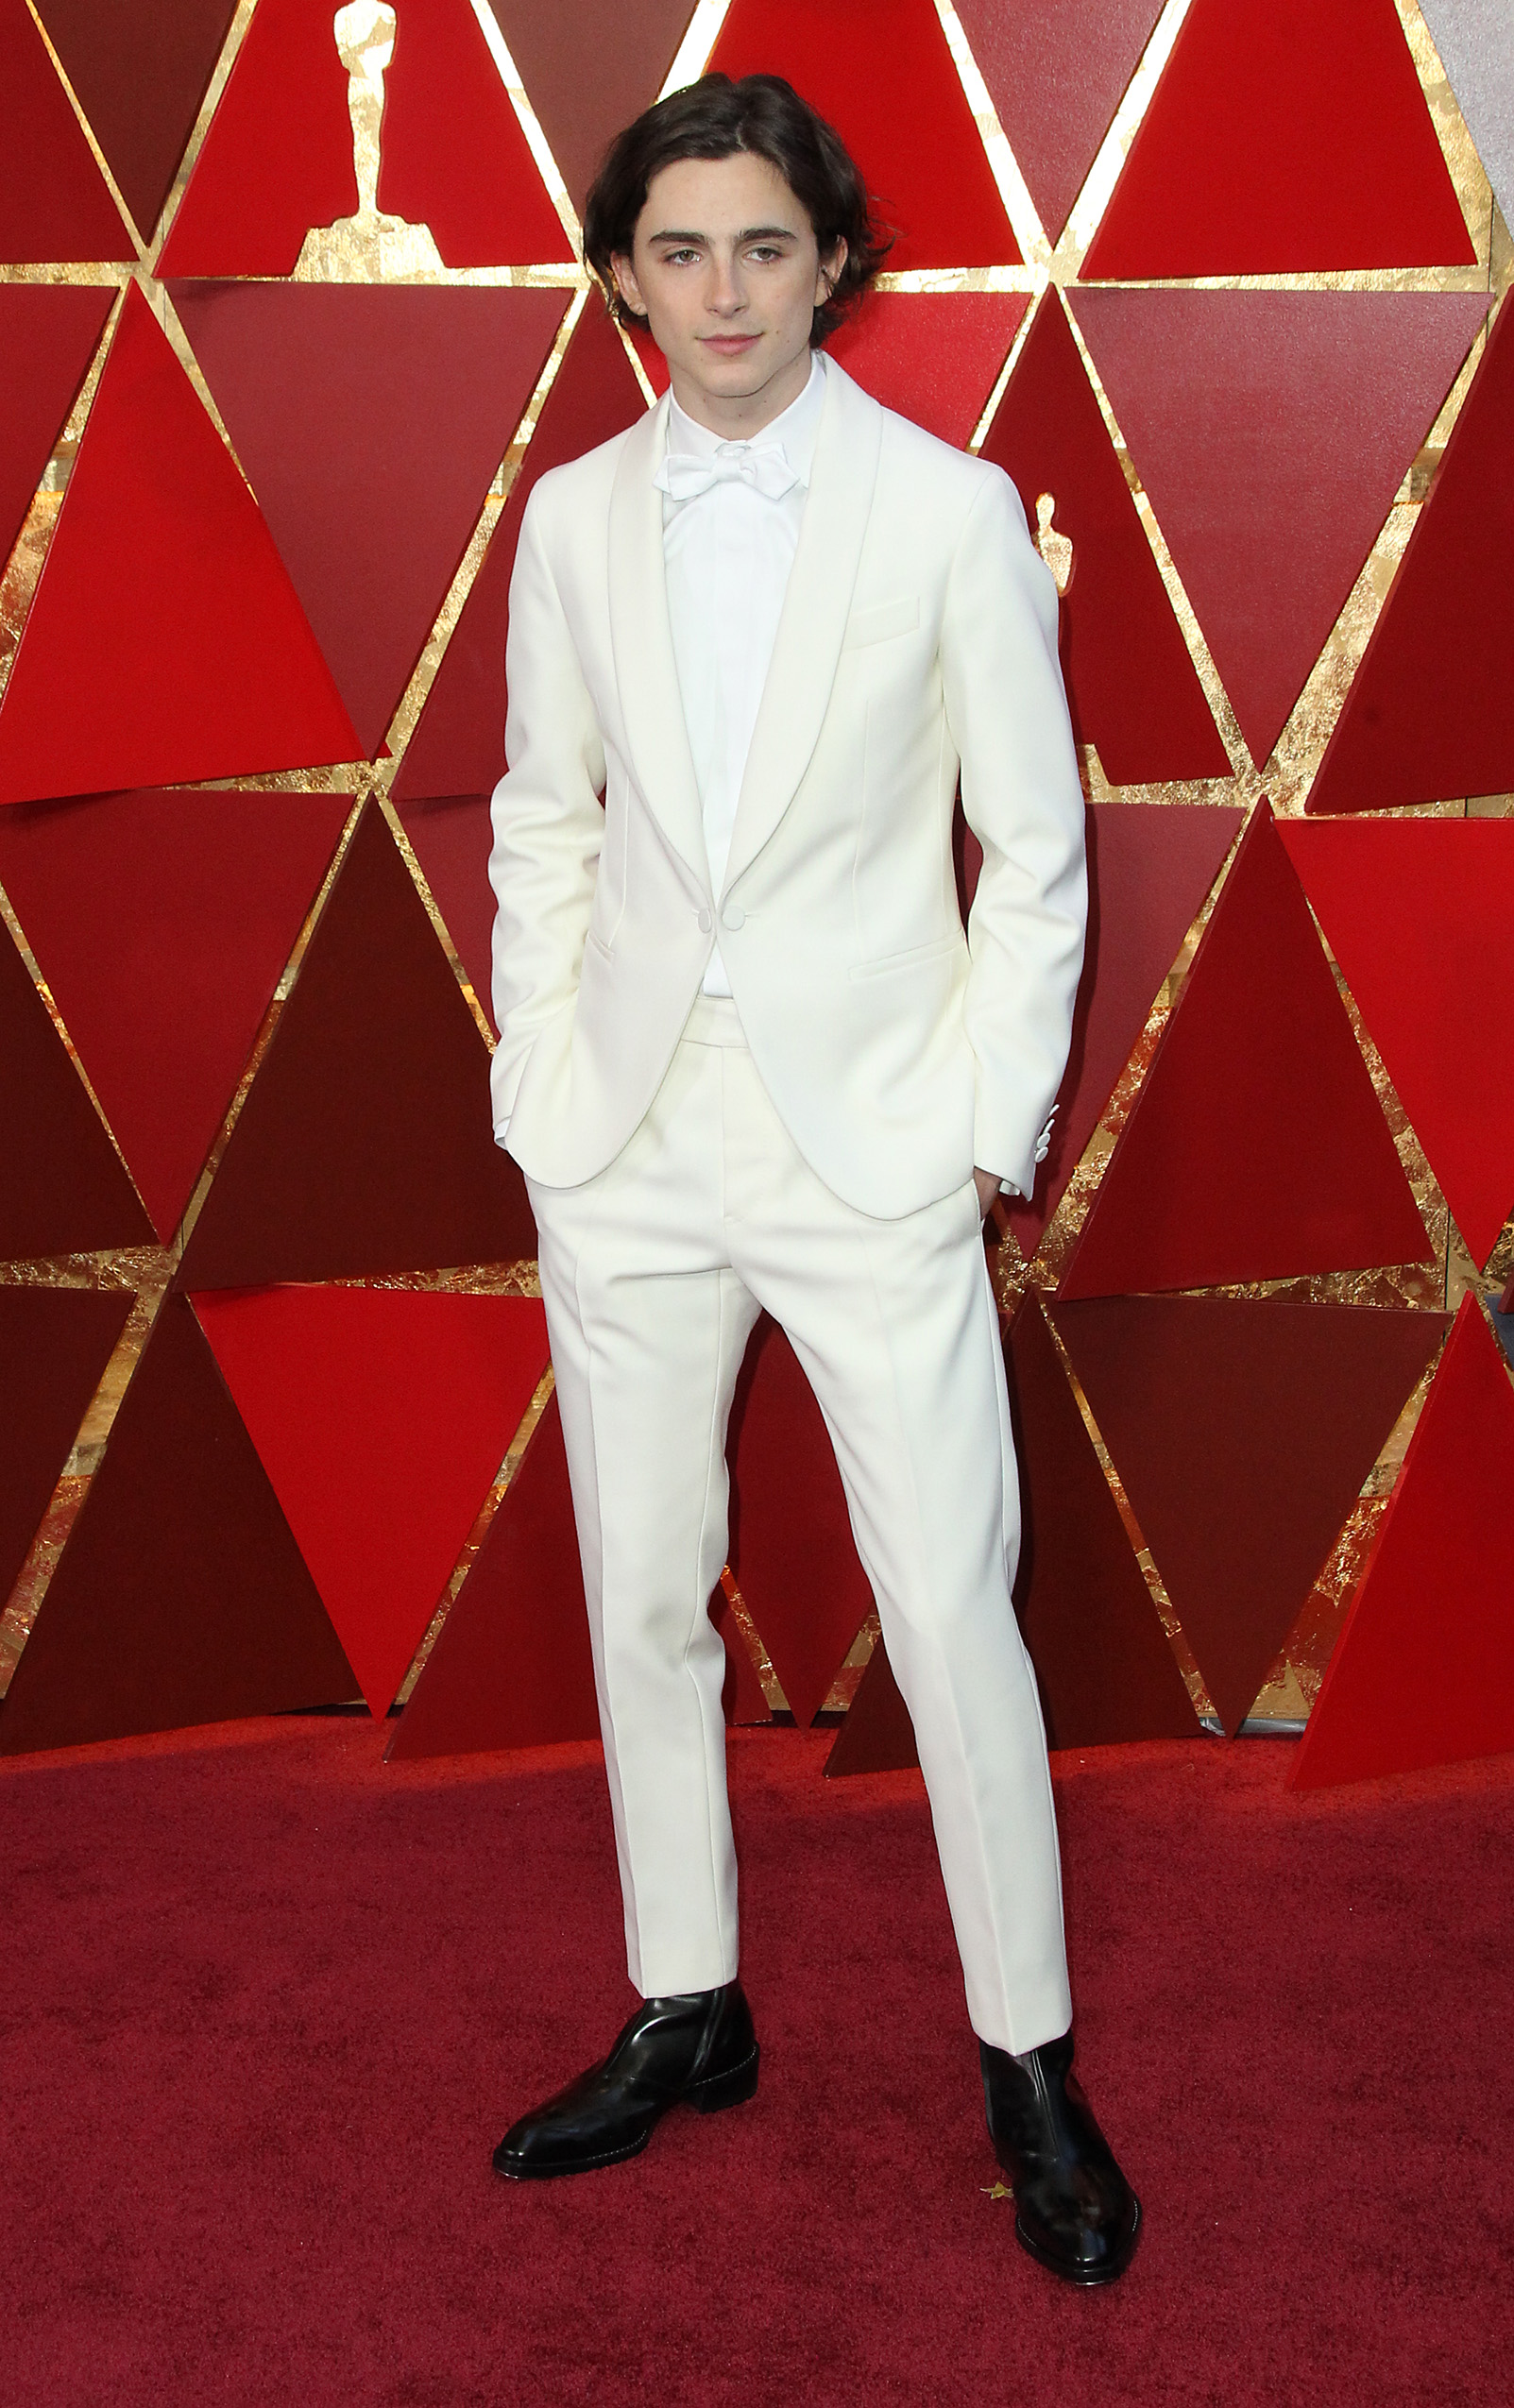 It seems most fashion critics disagree with me on this one as I've seen Timothee topping many best dressed lists this year, but the all white tux was a hard pass from me. (Image: Adriana M. Barraza/WENN.com)<p></p>